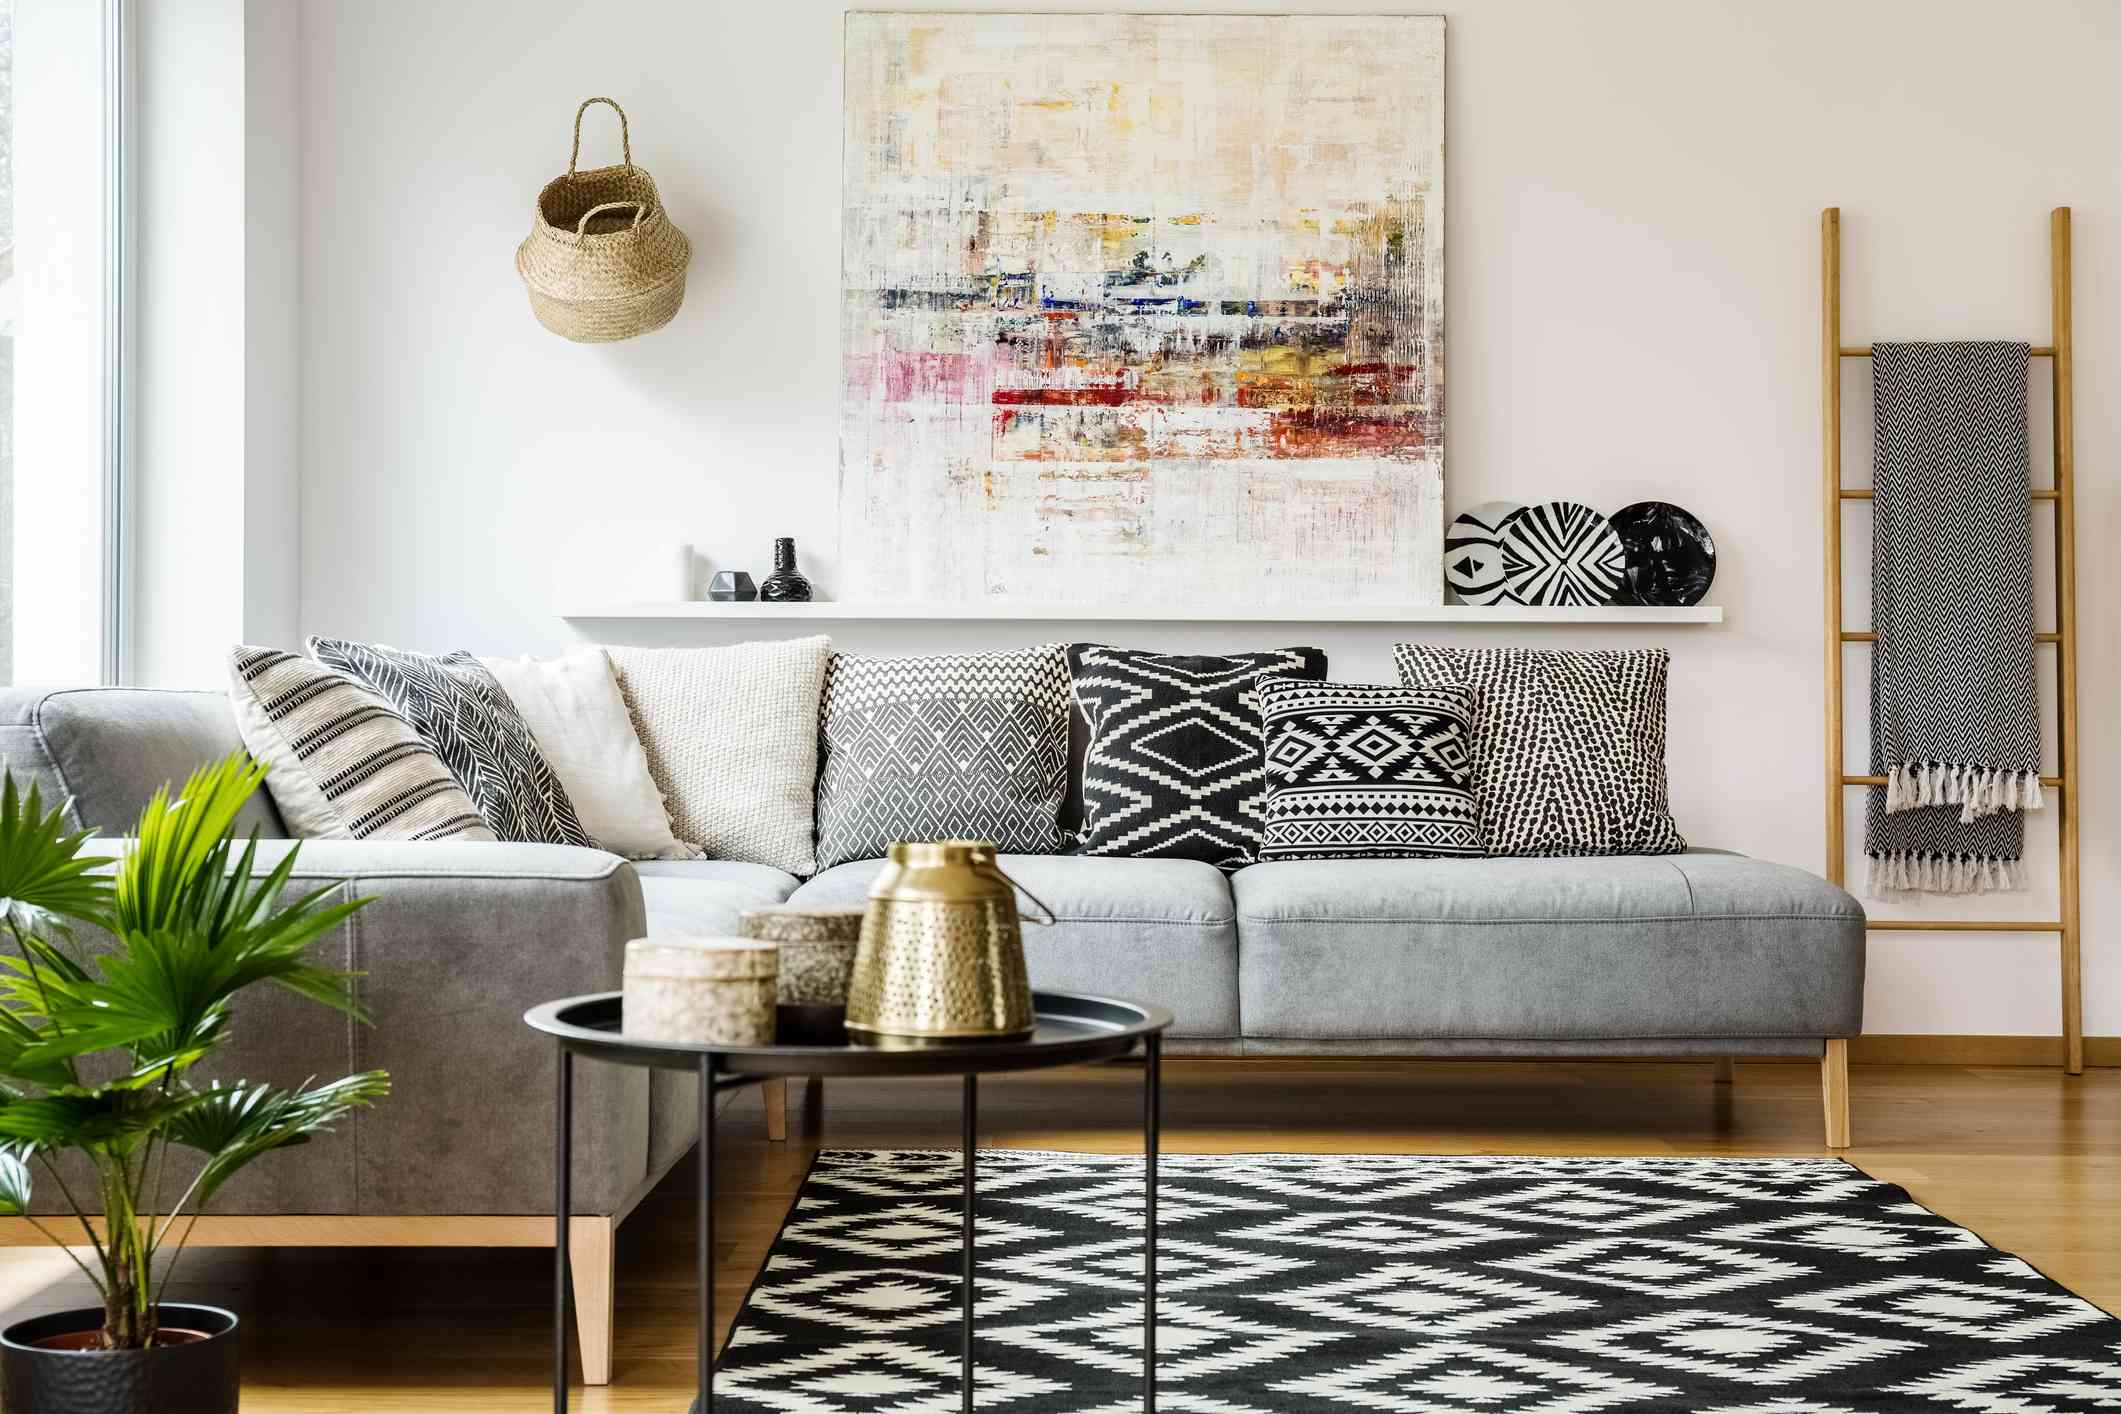 living room and sofa with black accents